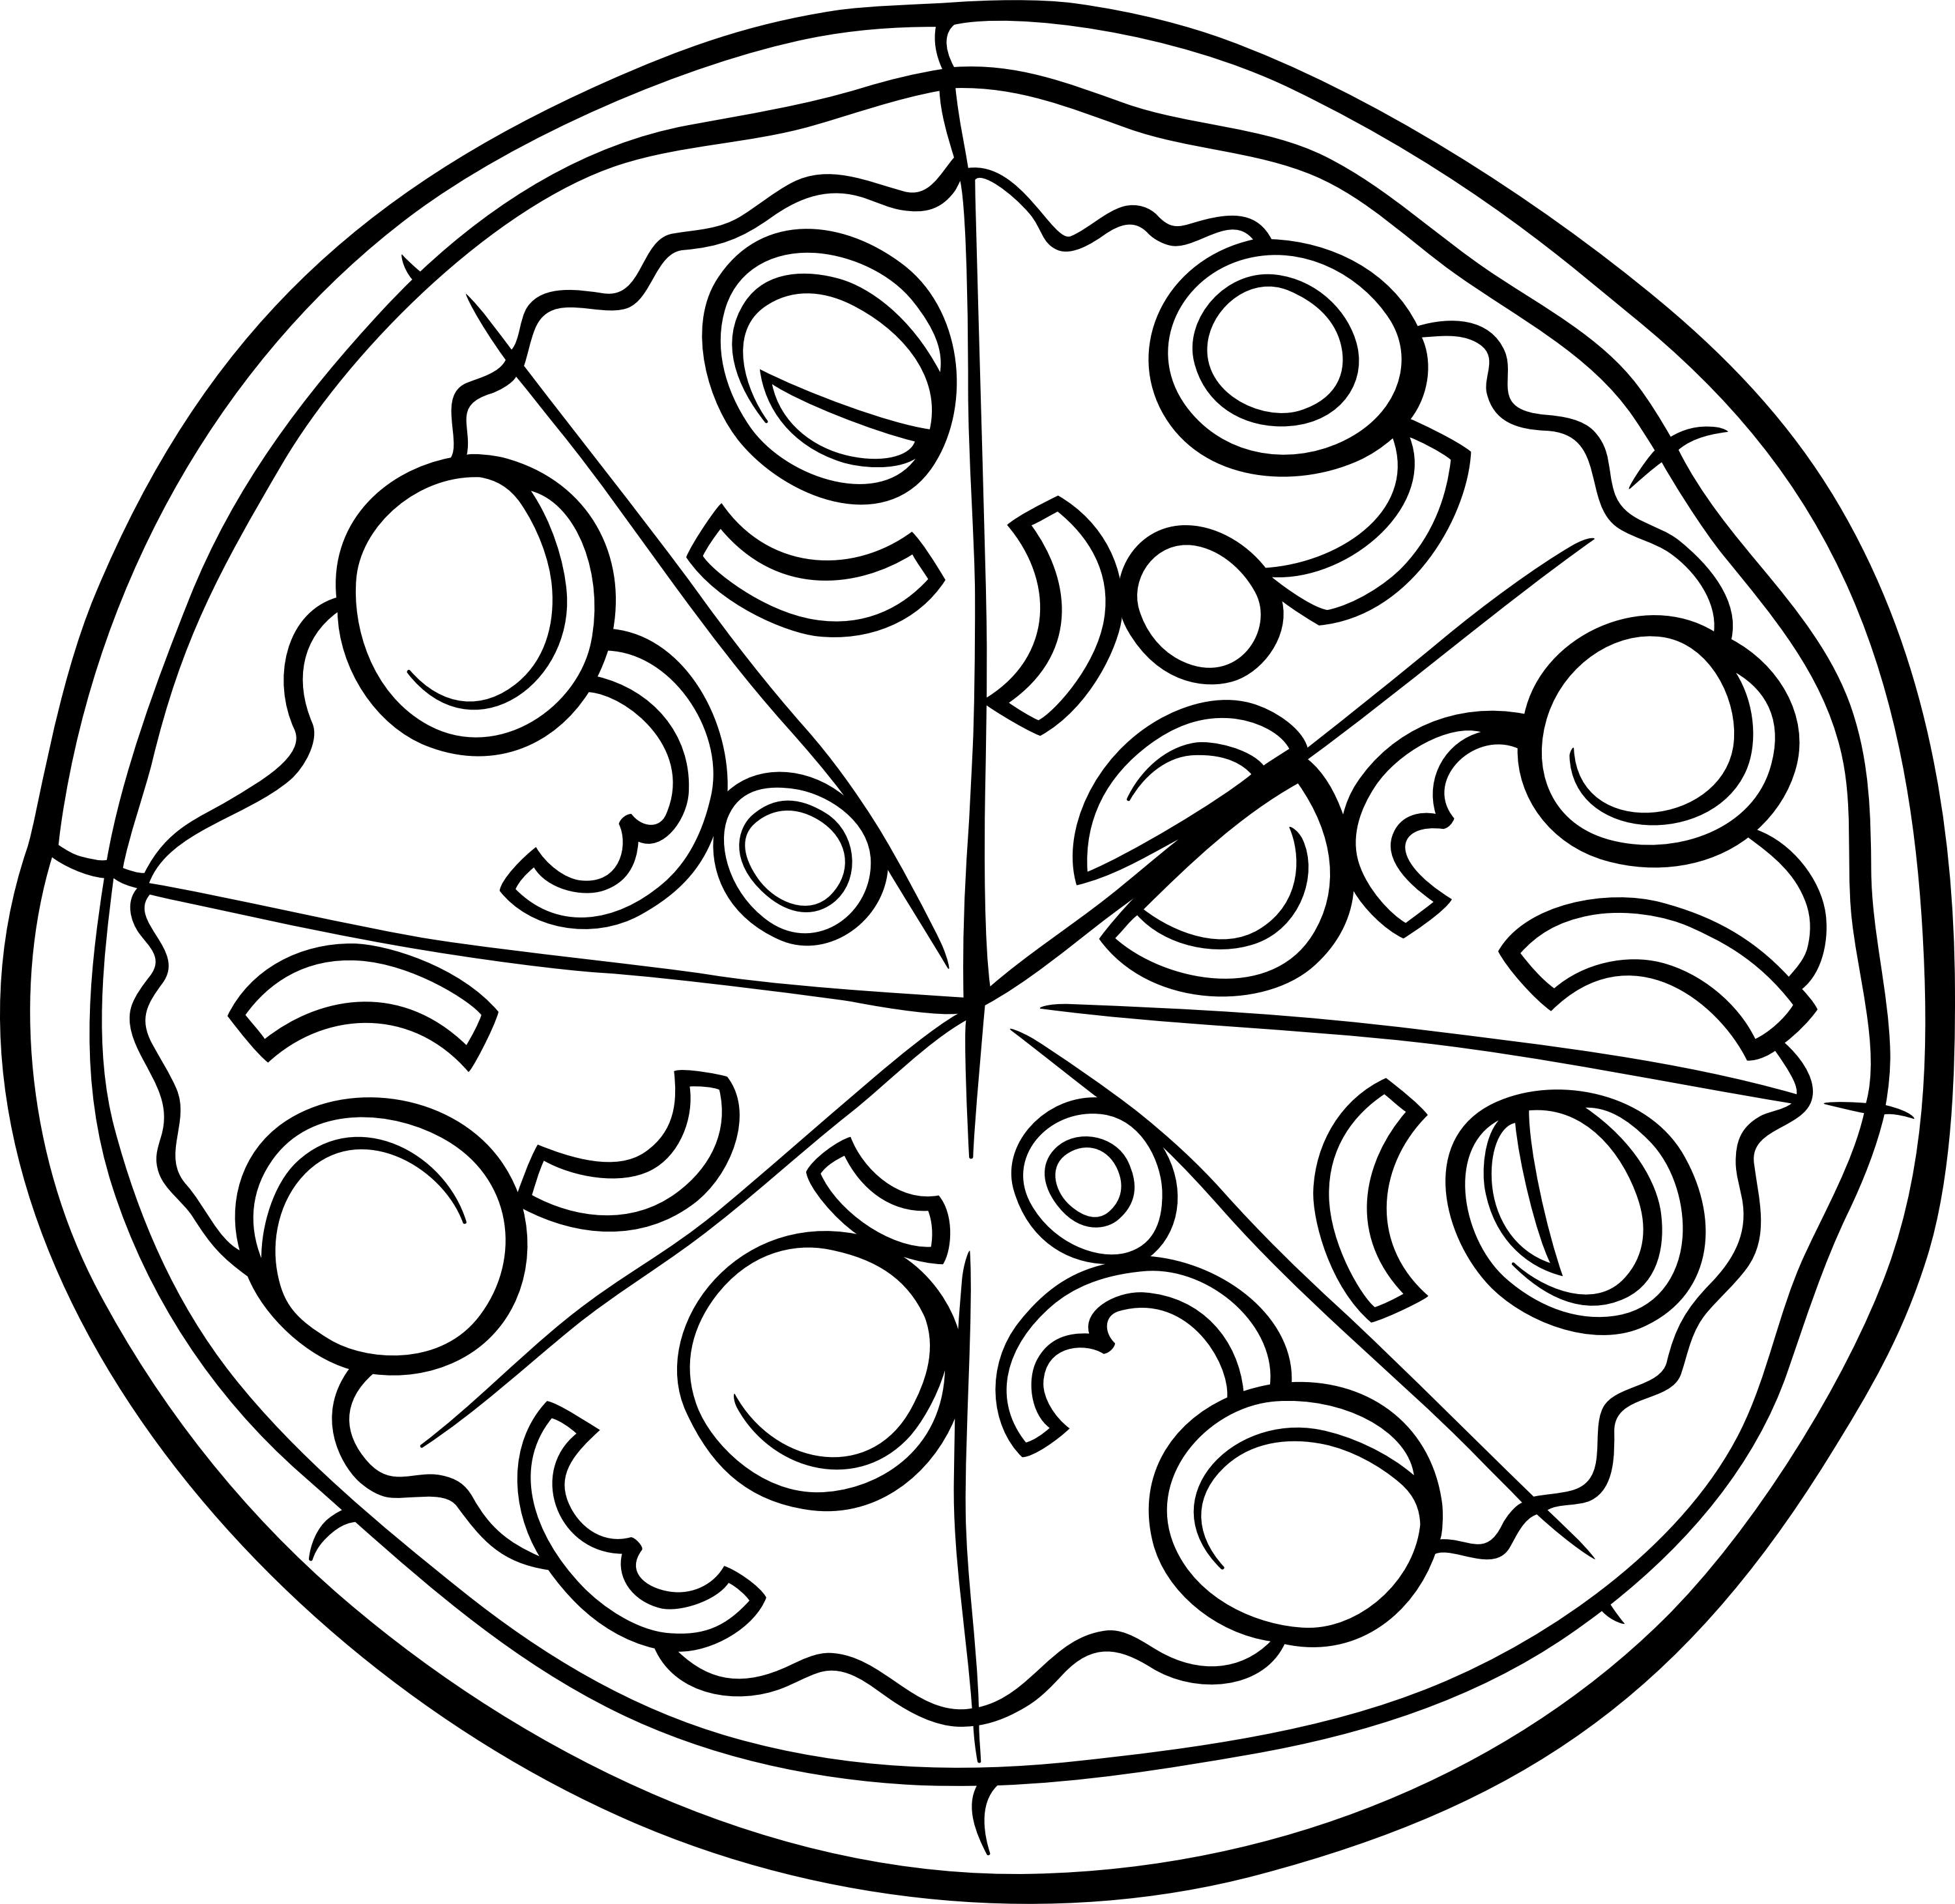 3000x2922 Top 80 Pizza Coloring Pages